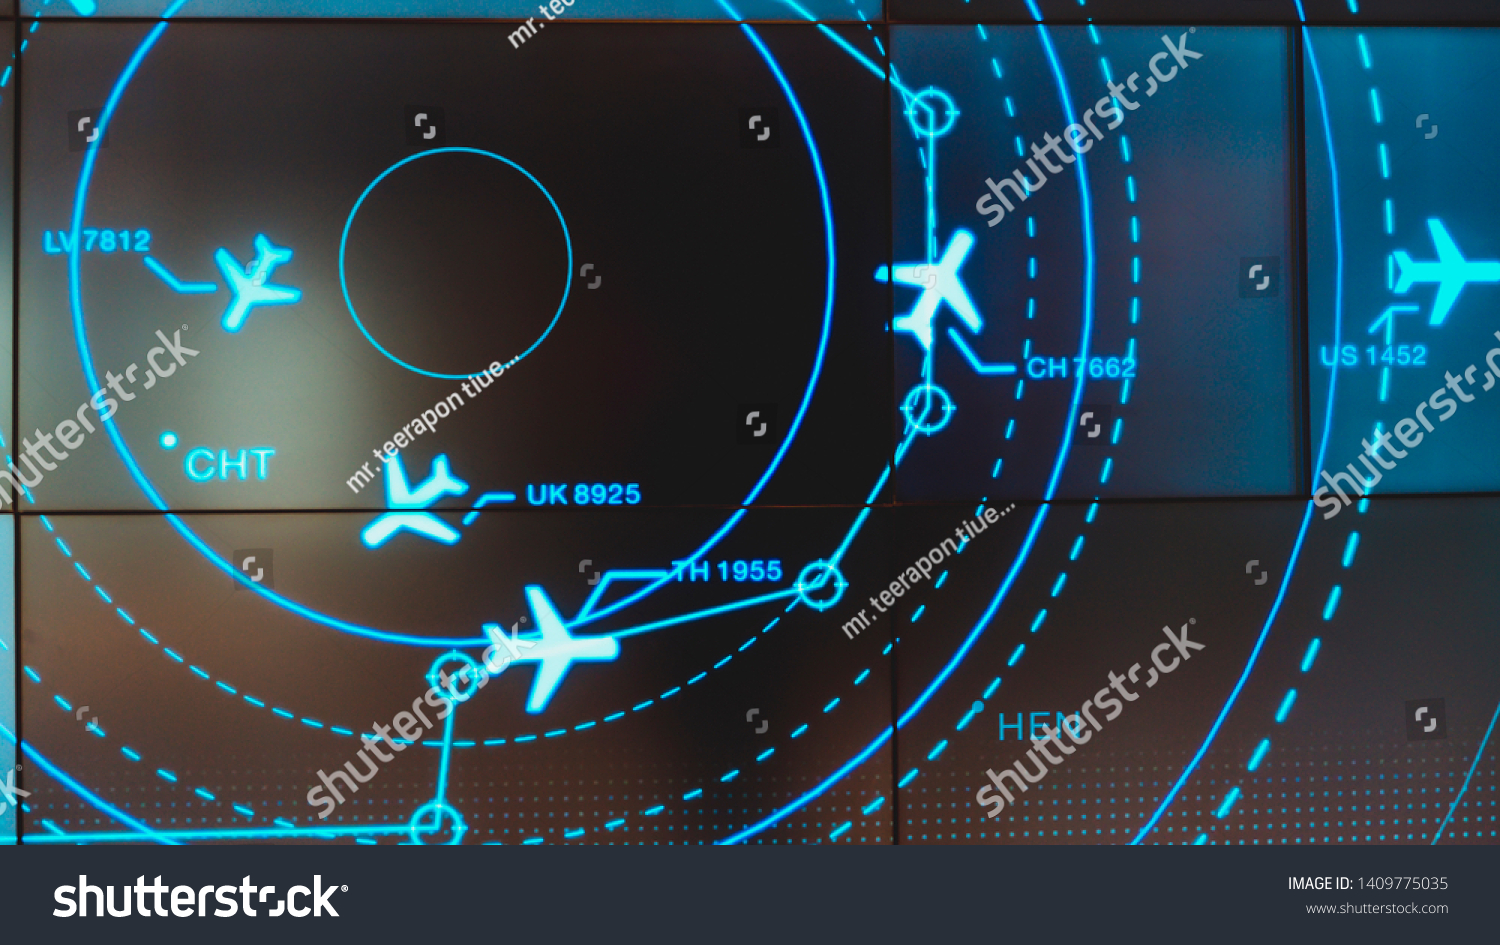 Simulation screen showing various flights for transportation and passengers. #1409775035